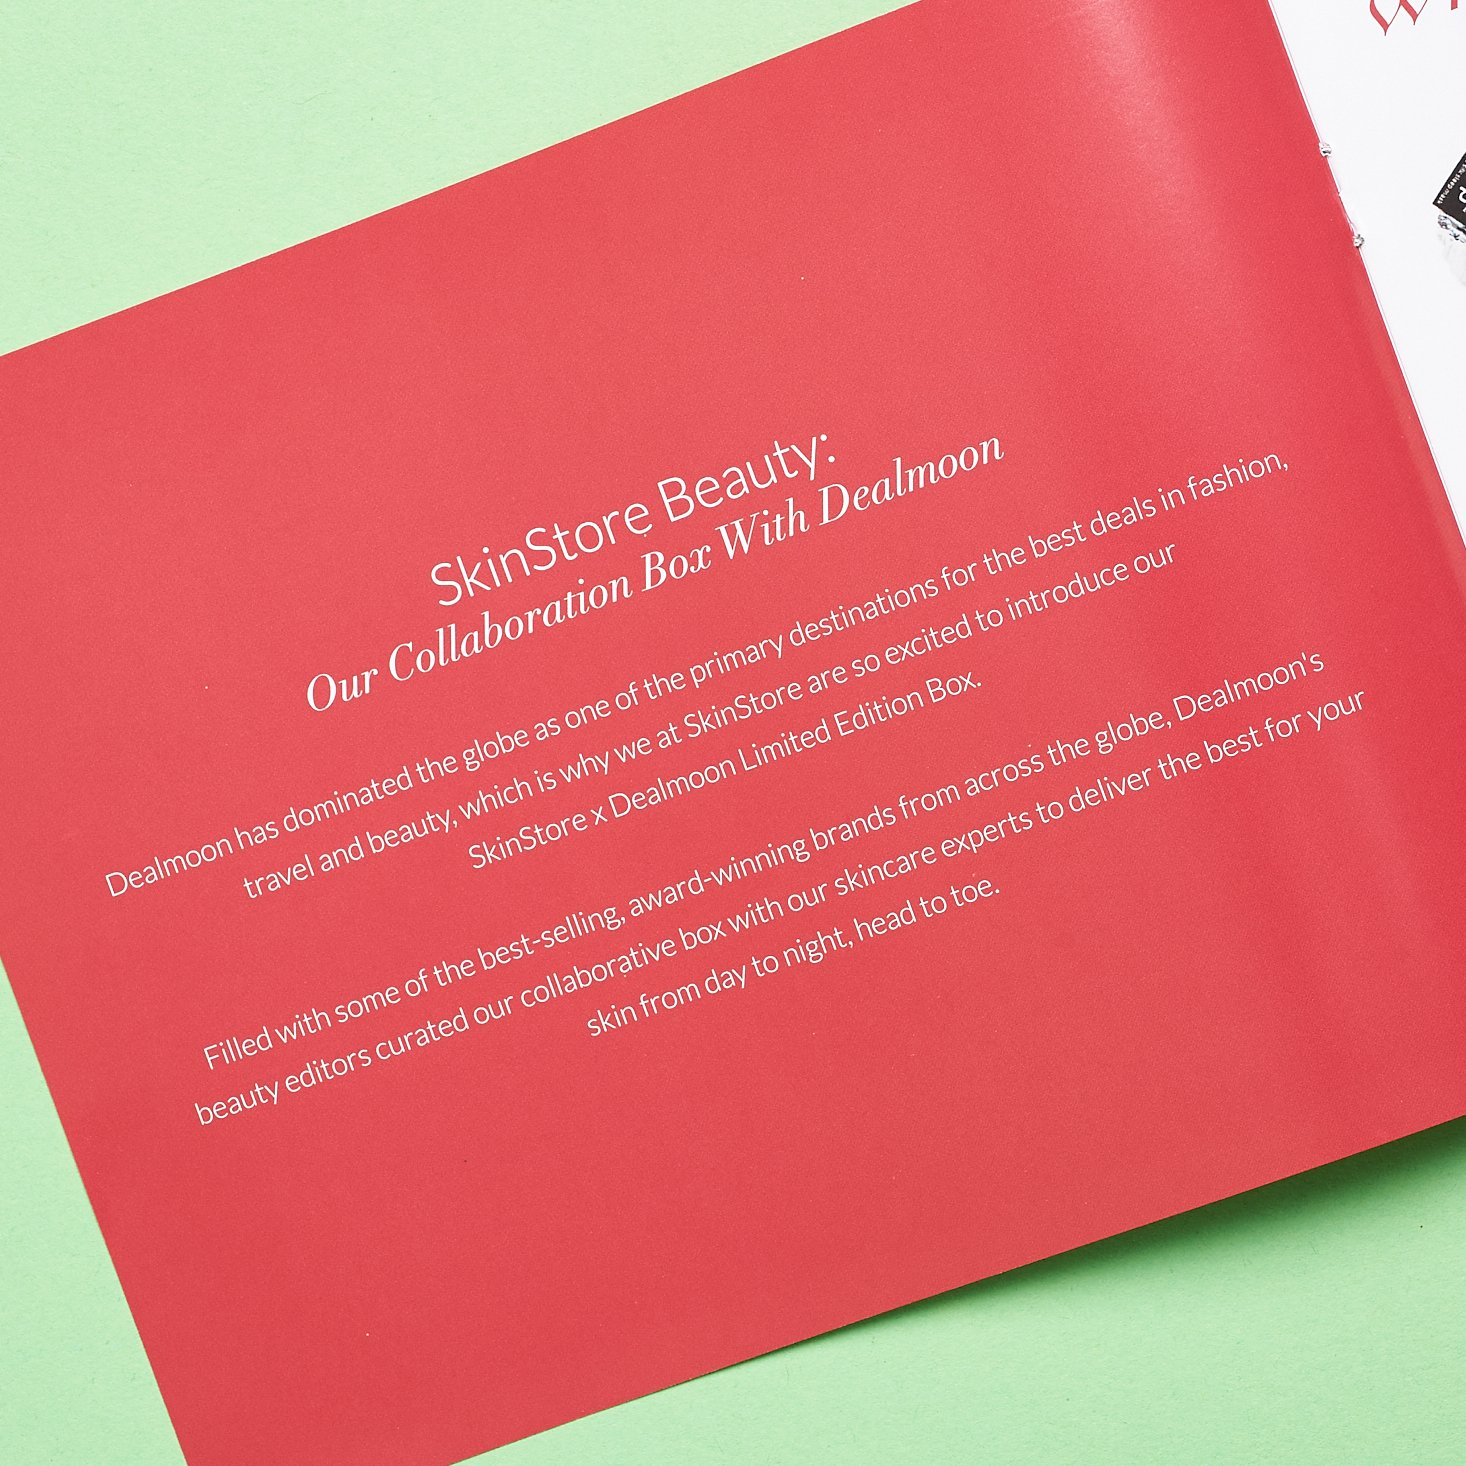 inside of red info booklet detailing the skinstlre x deal moon collaboration